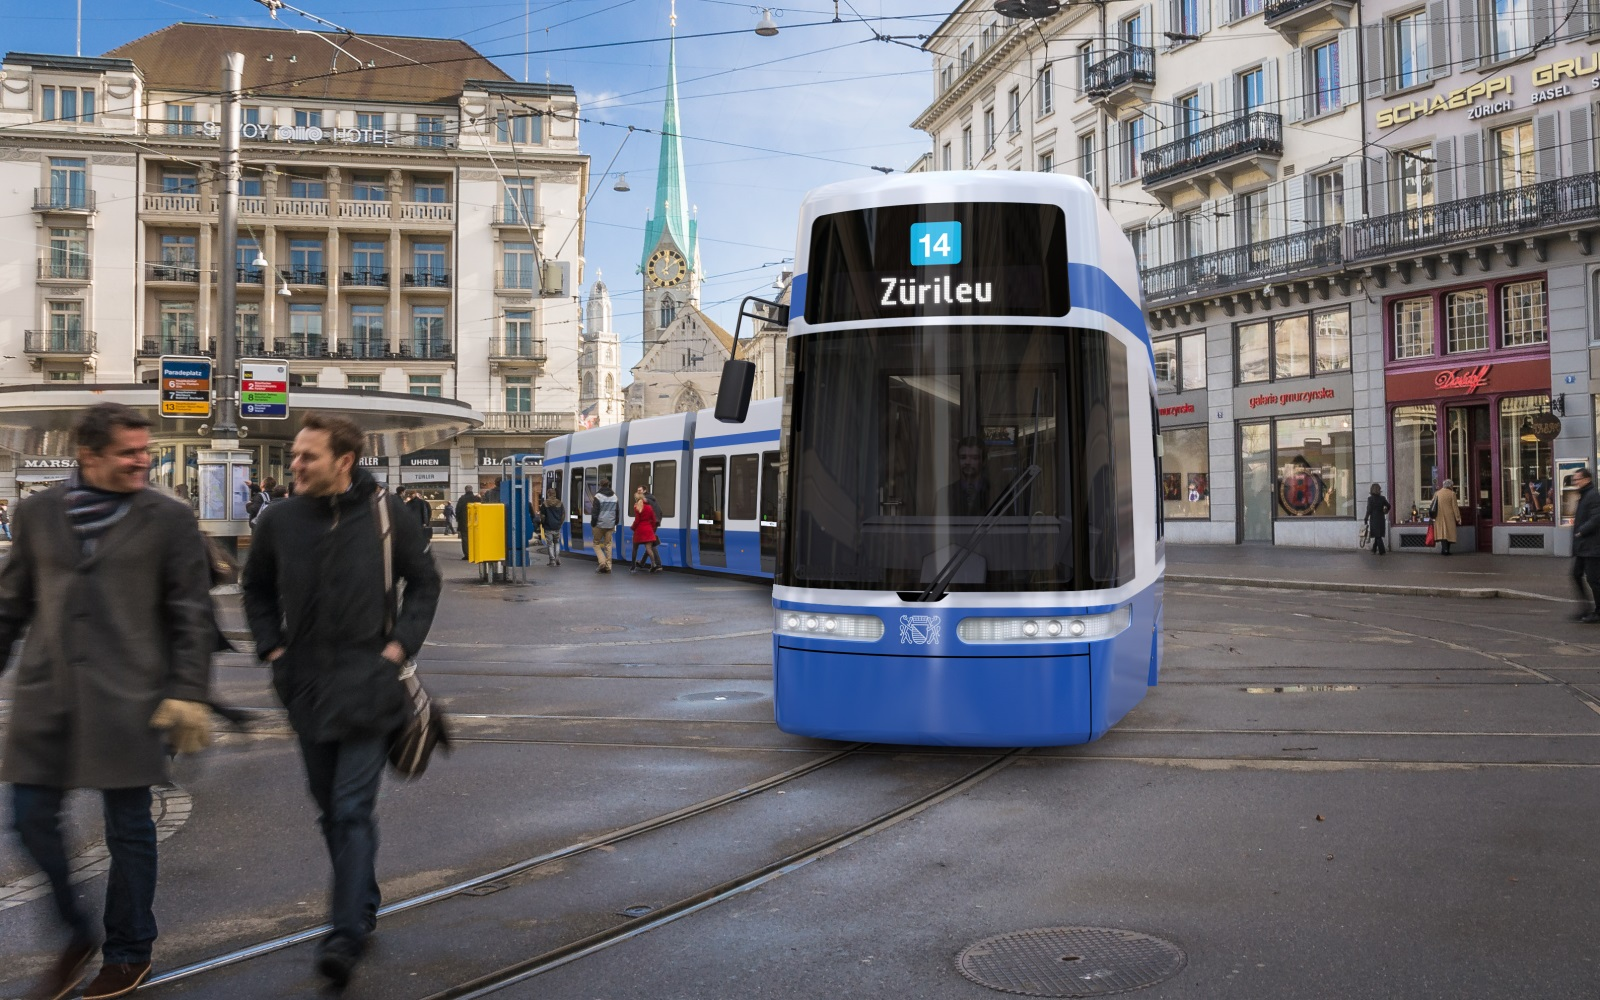 Bombardier flexity for Zurich